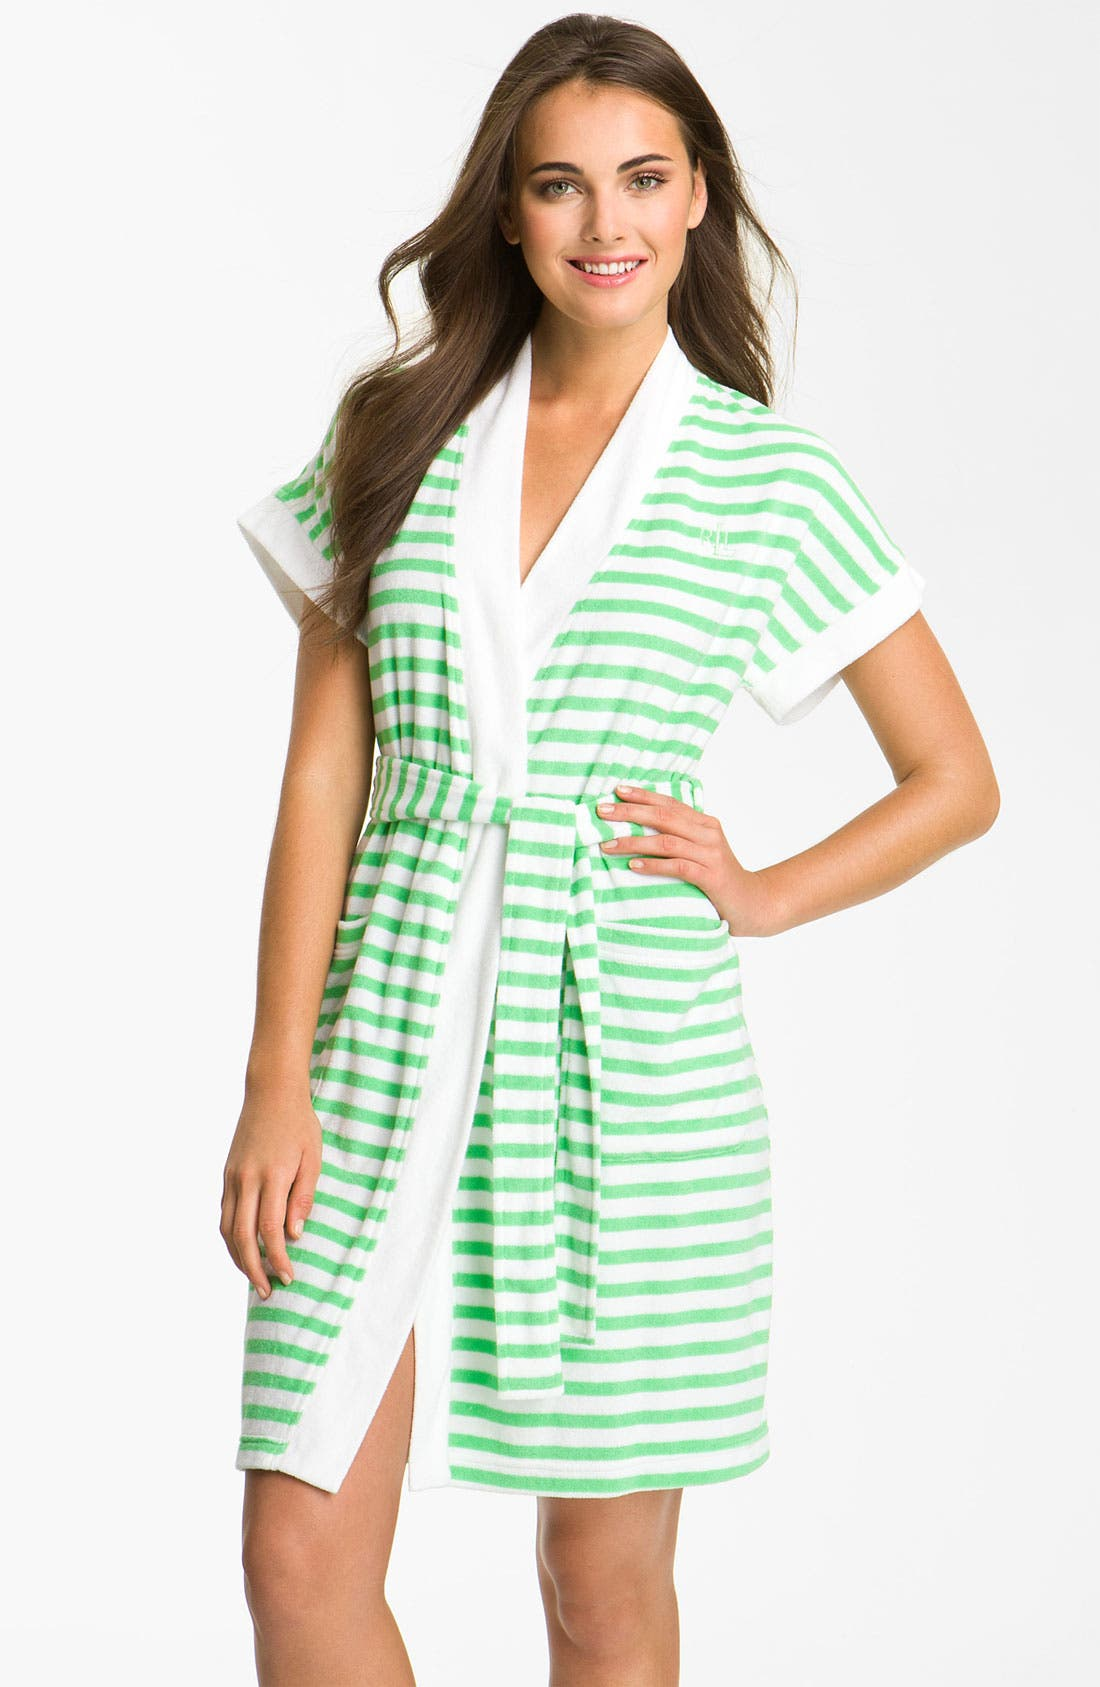 Alternate Image 1 Selected - Lauren Ralph Lauren Sleepwear Stripe Spa Robe